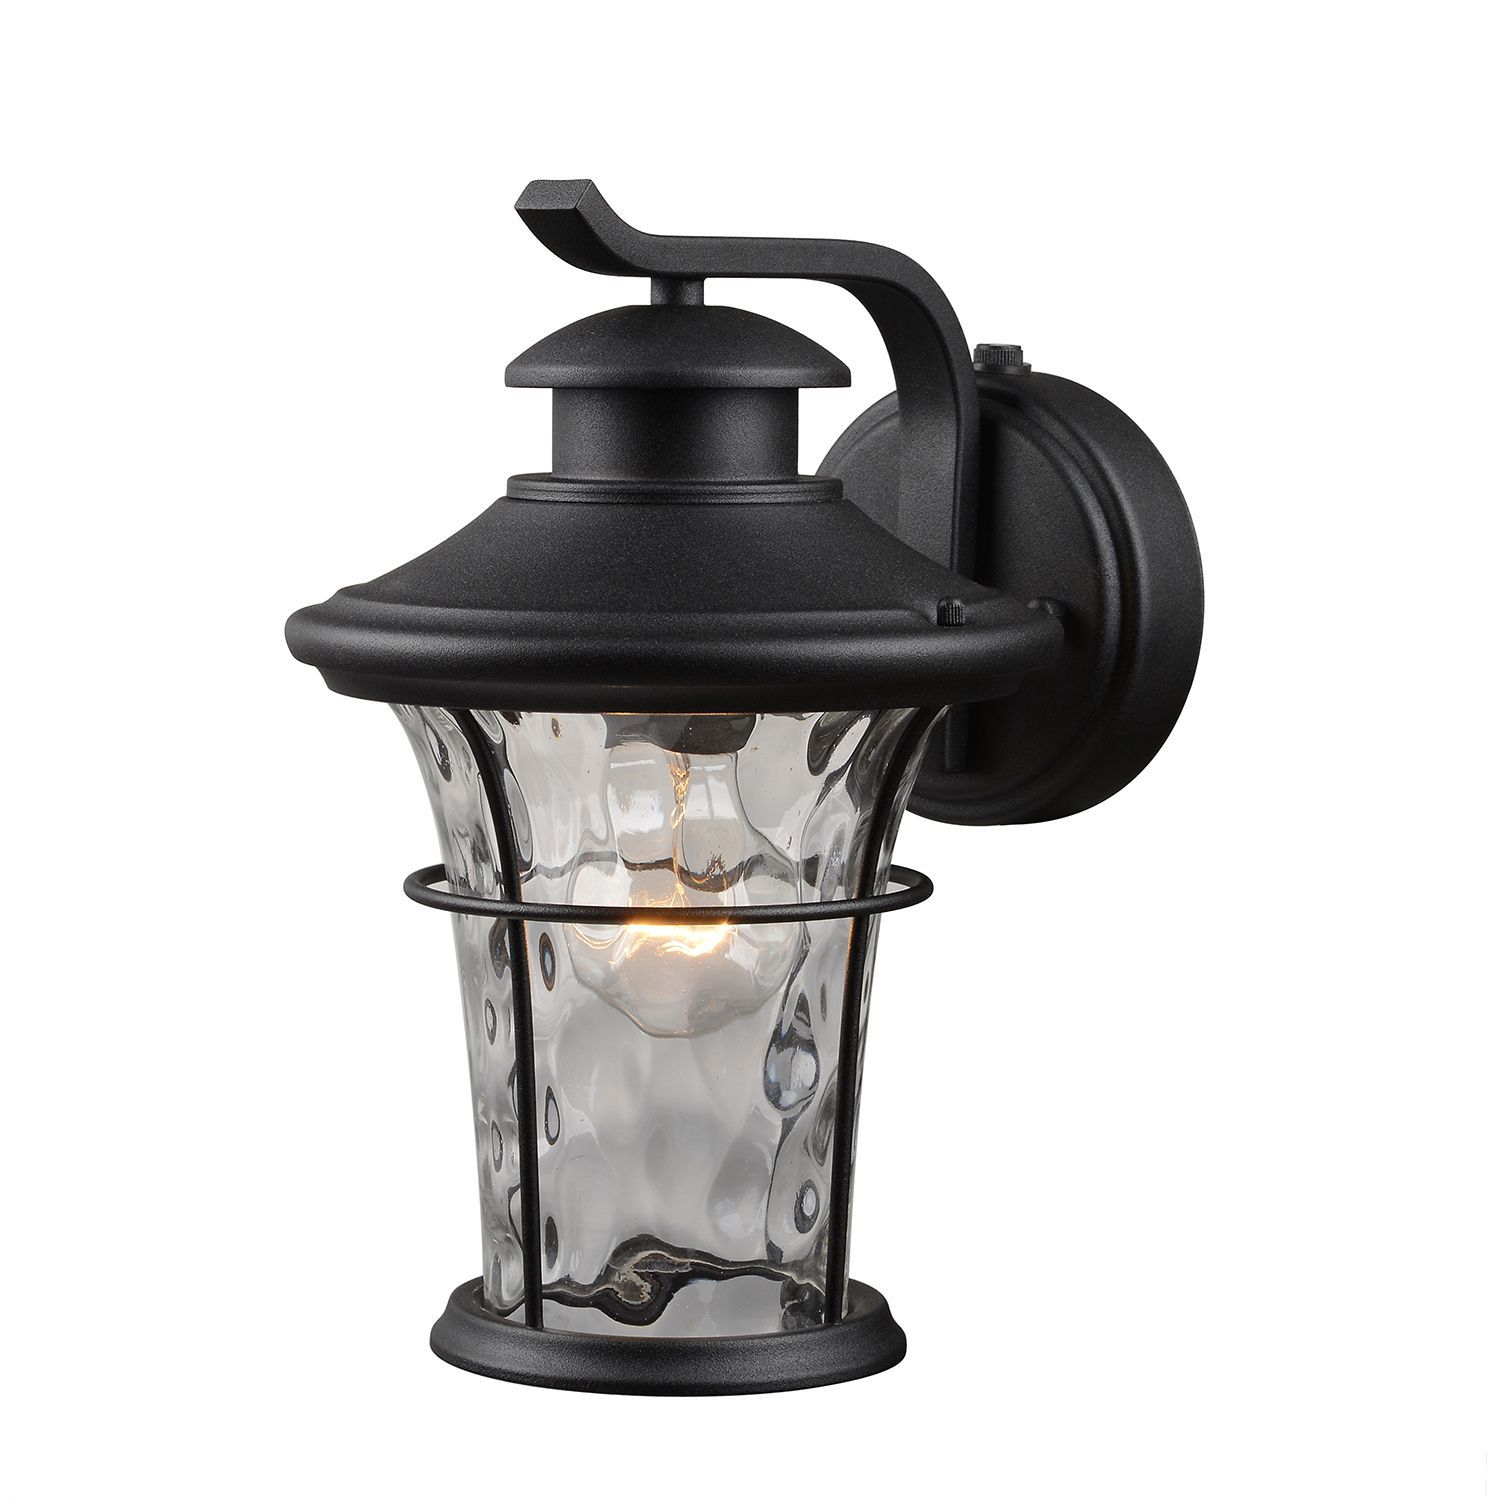 Hardware House Wall Mounted Dusk To Dawn Lantern Textured Black Sam S Club Outdoor Wall Mounted Lighting Outdoor Wall Lantern Lantern Light Fixture